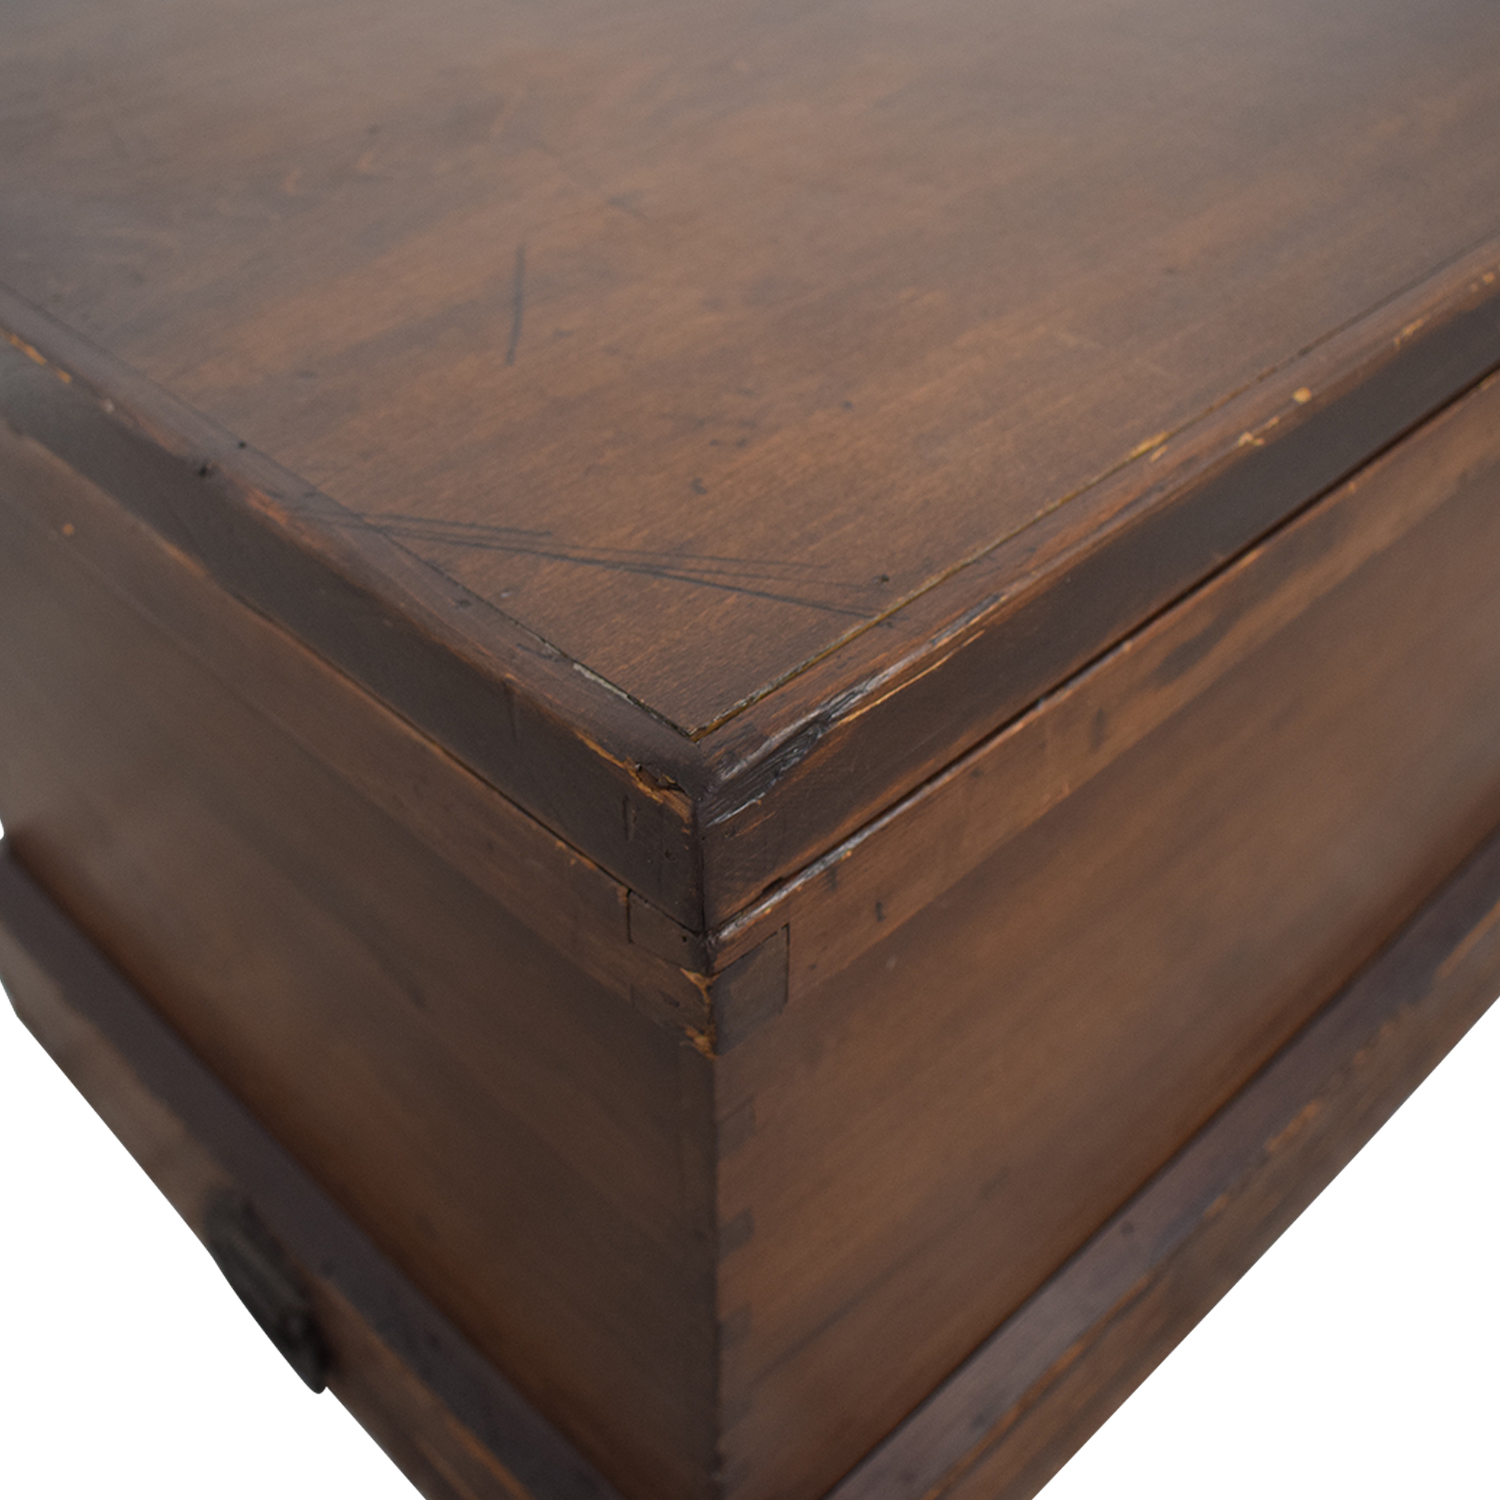 Rustic Decorative Chest brown